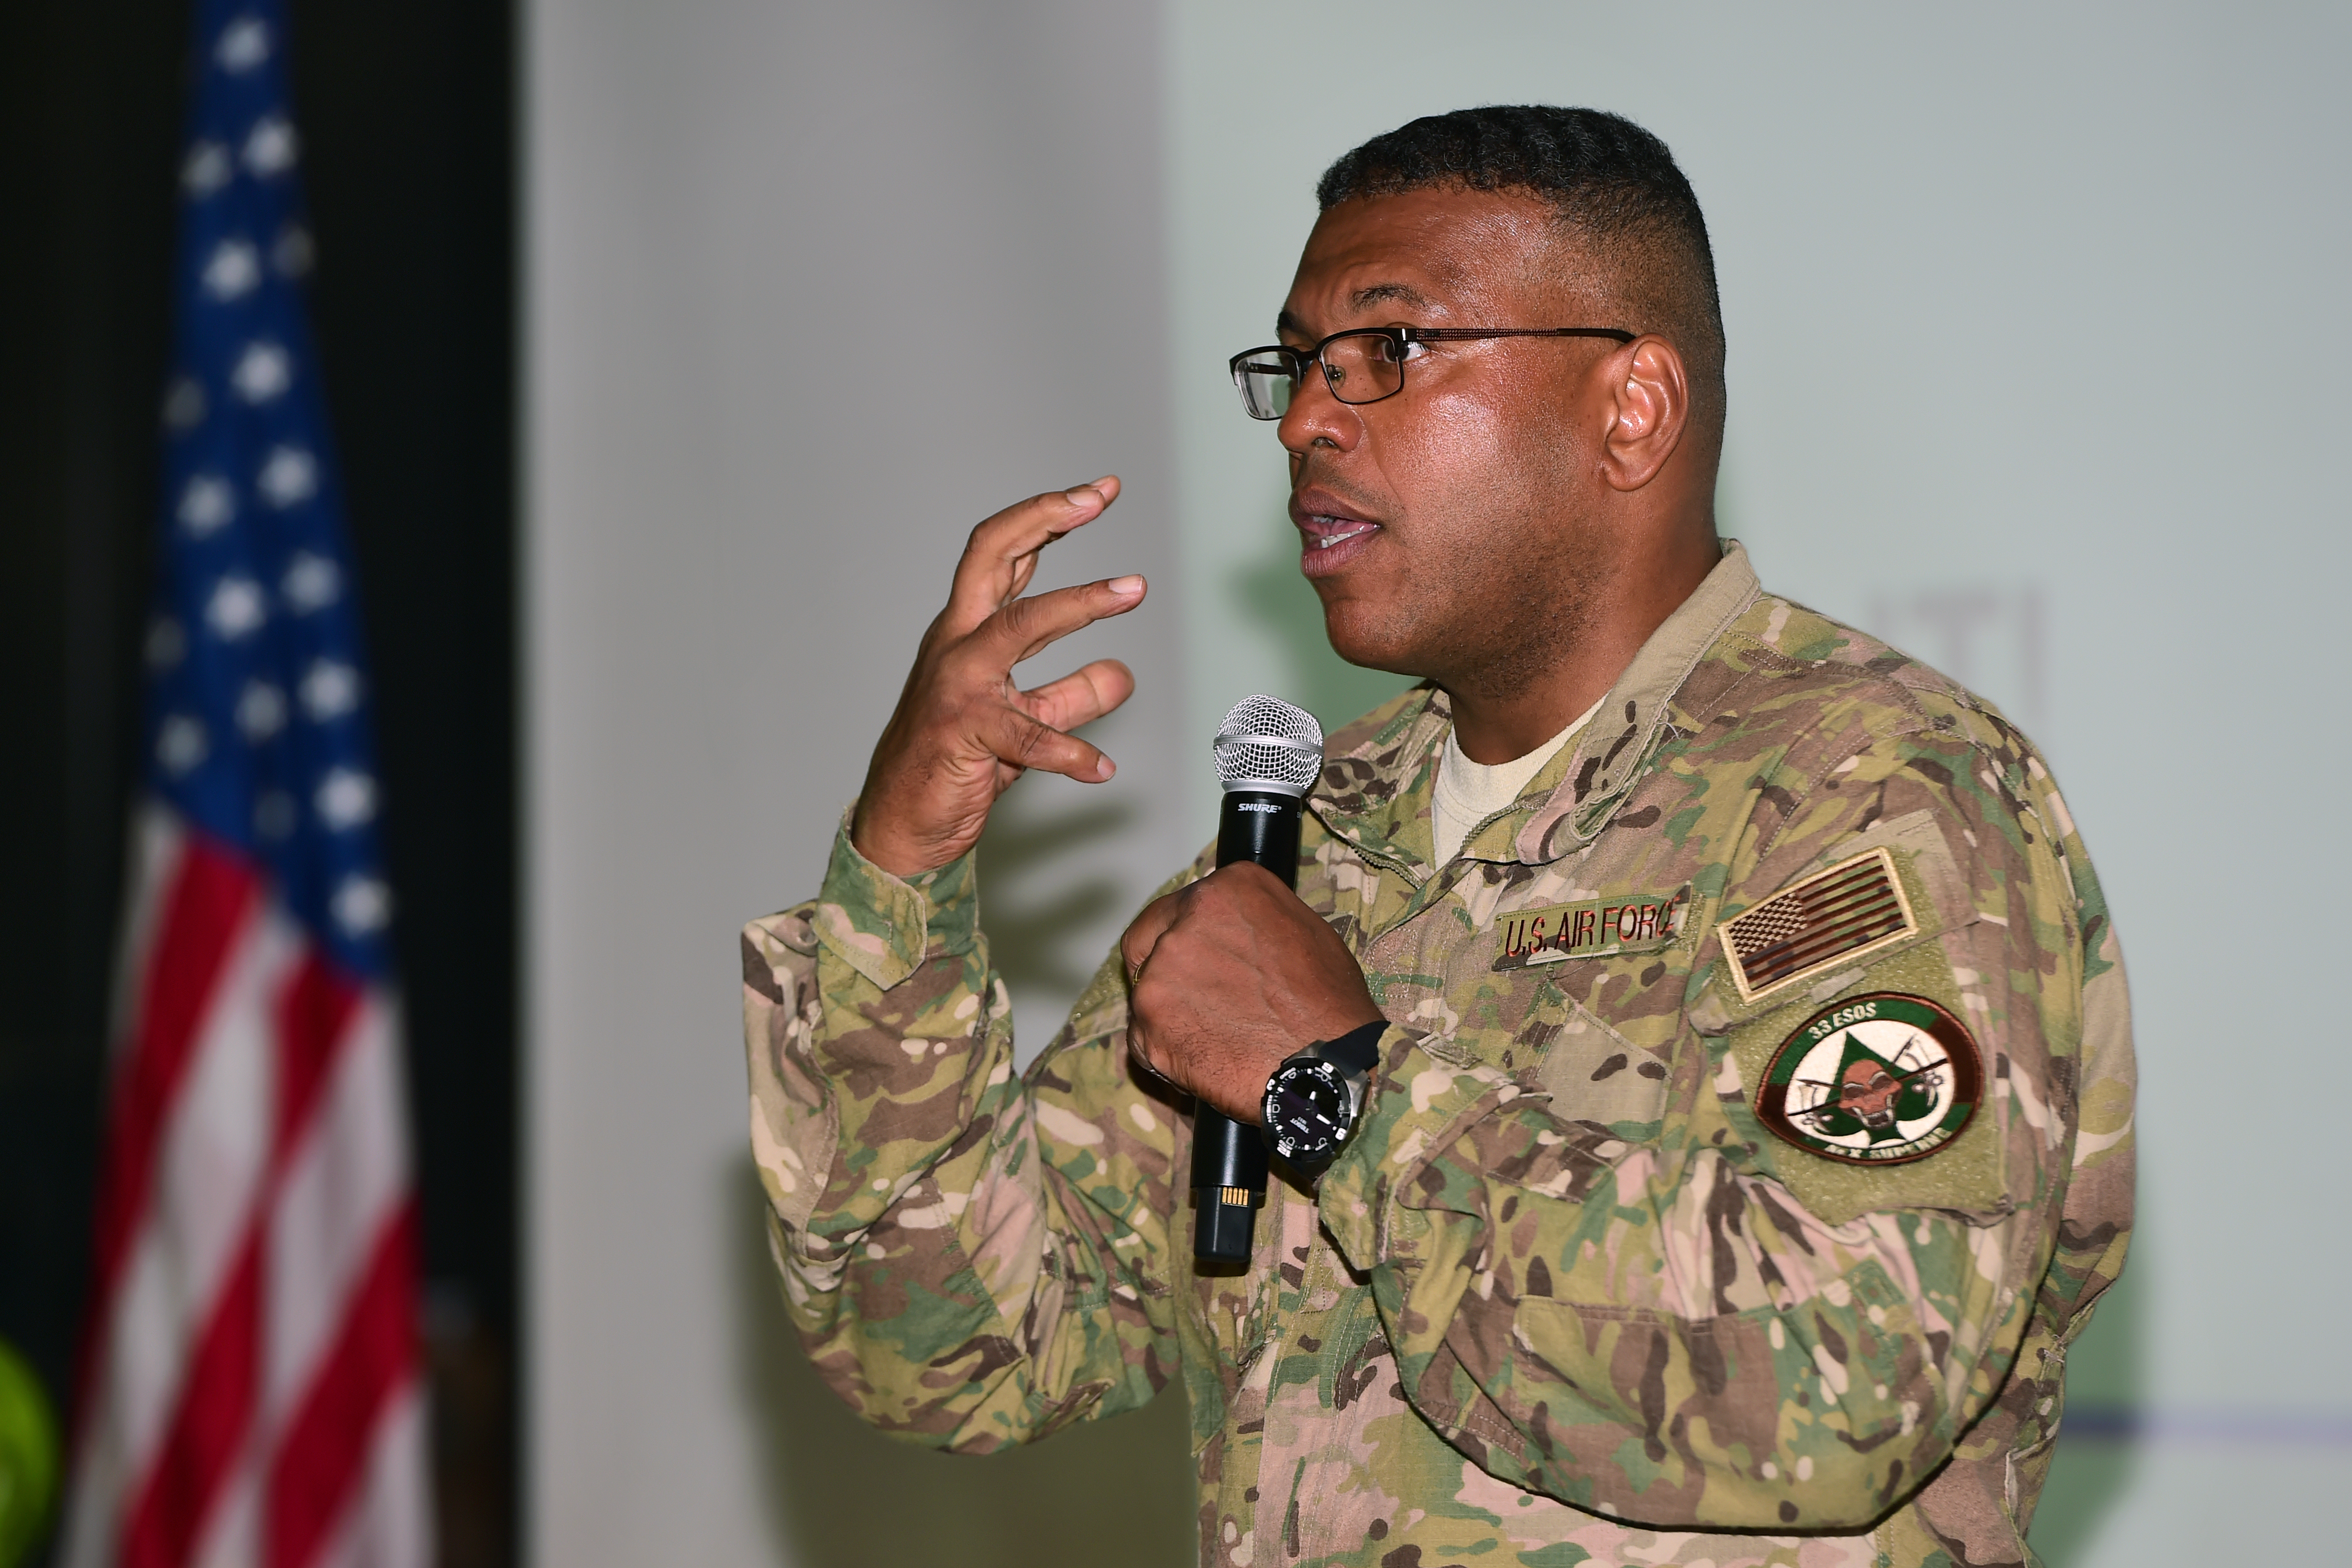 Lt. Gen. Richard Clark, commander of the 3rd Air Force and 17th Expeditionary Air Force, addresses active, reserve and National Guard Airmen while visiting Camp Lemonnier, Djibouti April 12, 2017. As 3rd Air Force commander, Clark oversees the planning, deployment, sustainment and redeployment of air forces that directly support U.S. combatant commanders during contingency and wartime operations. (U.S. Air National Guard photo by Master Sgt. Paul Gorman)